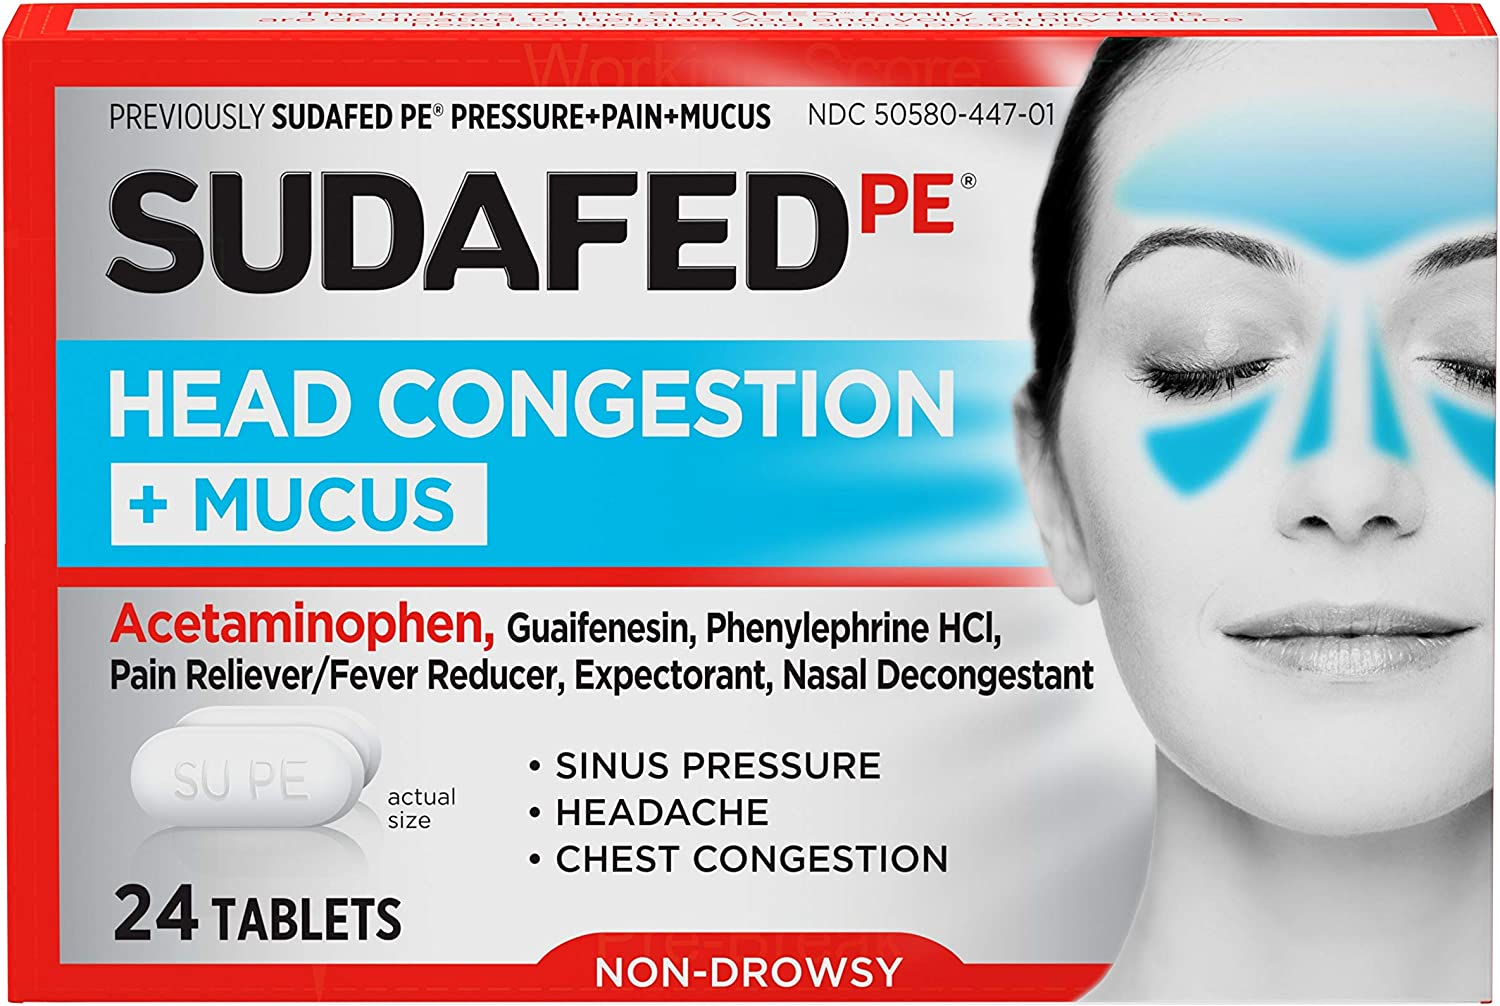 Sudafed PE Head Congestion + Mucus Tablets for Sinus Pressure, Pain & Congestion, 24 ct: Health & Personal Care